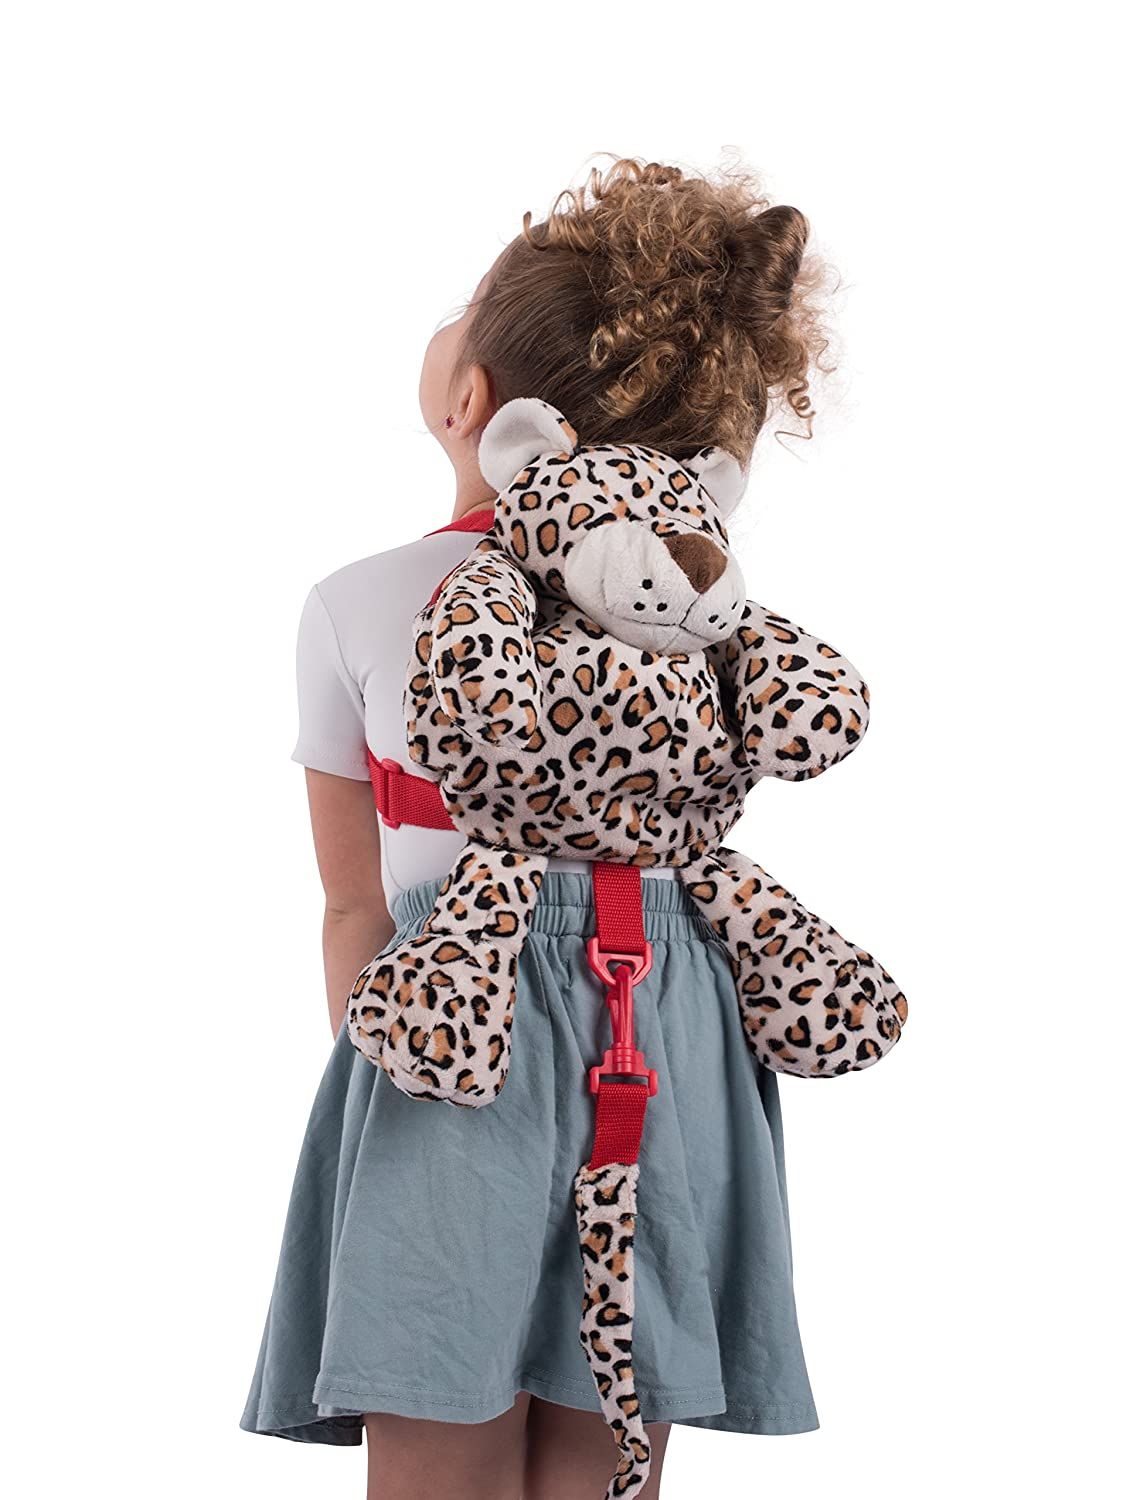 Mochila Animal Planet 2 en 1 con arné s, leopardo HIS Juveniles 60108